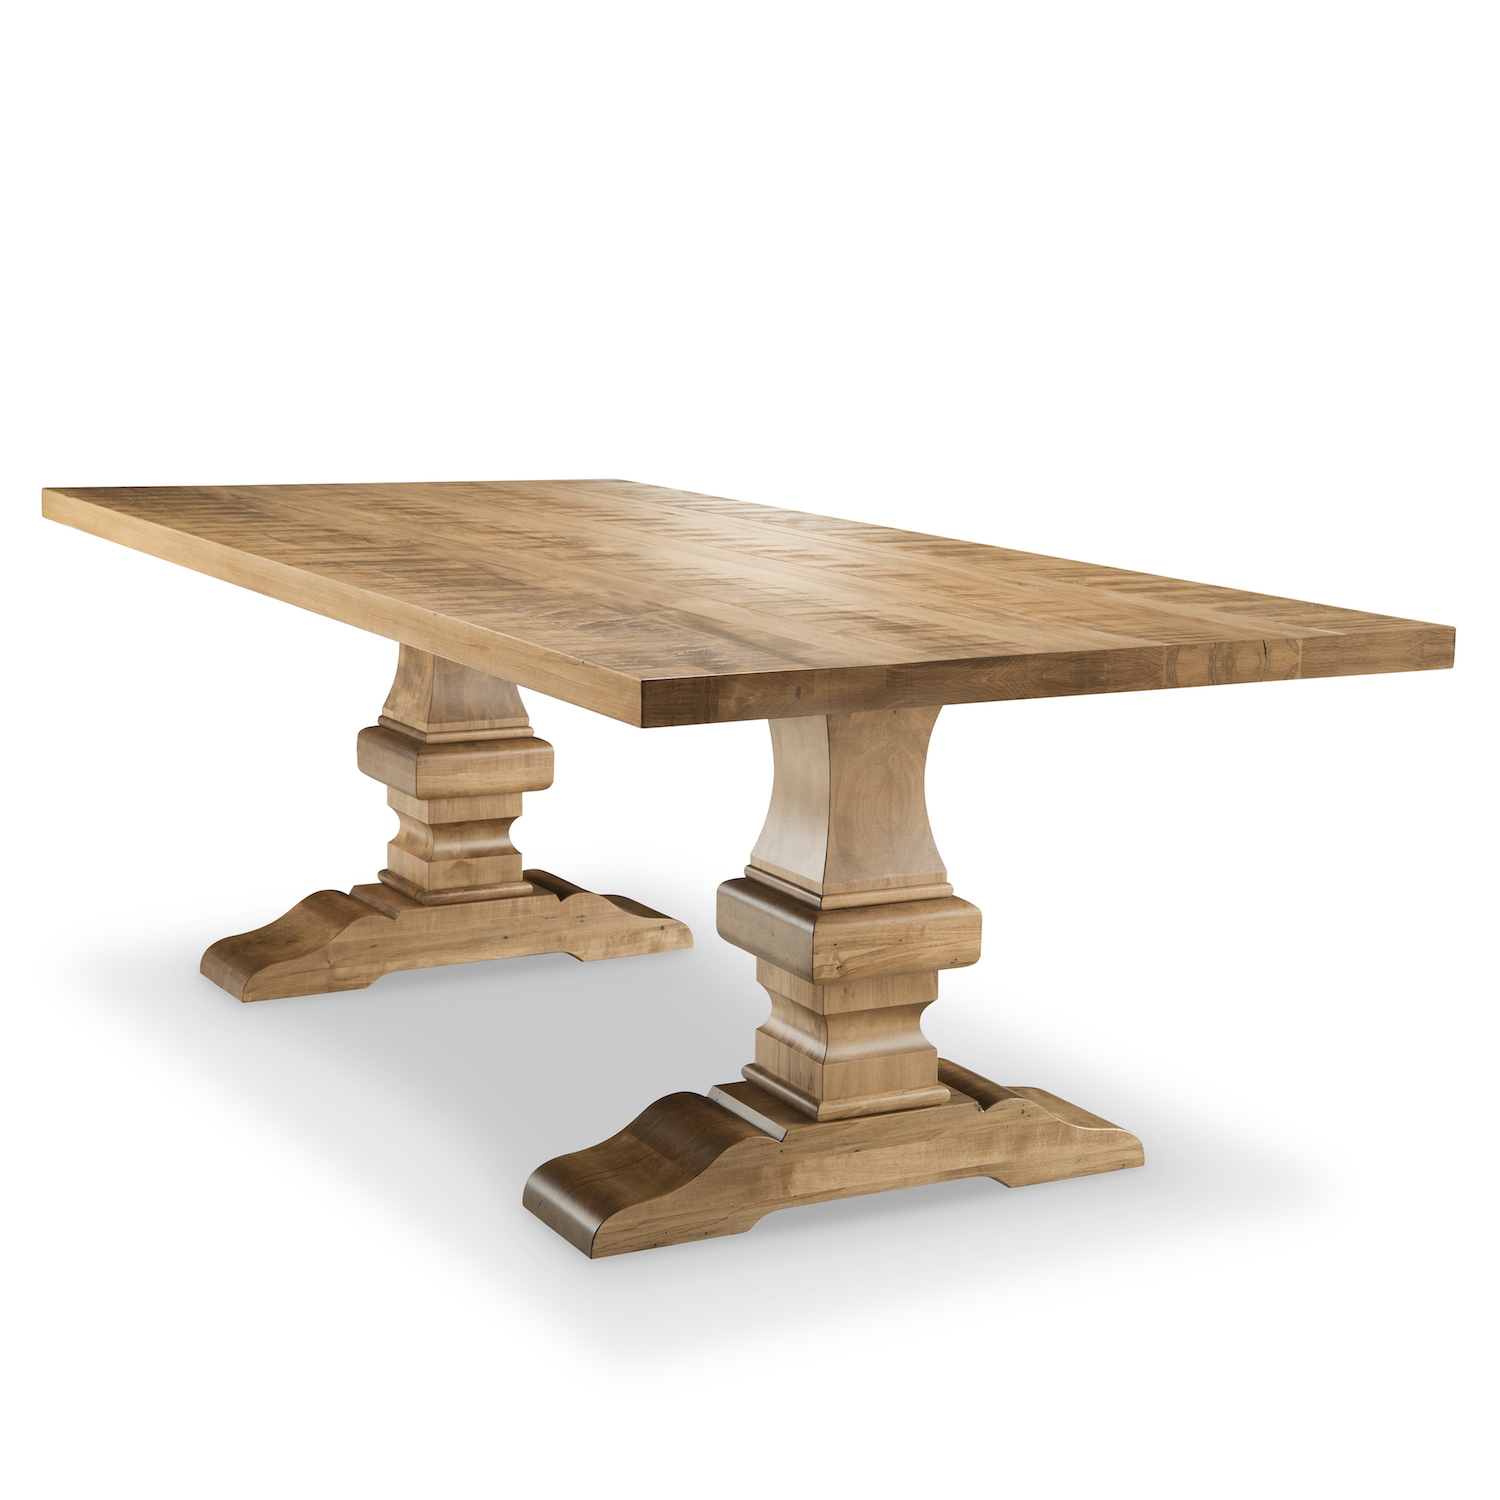 Thornbury_Table_Angled.jpg